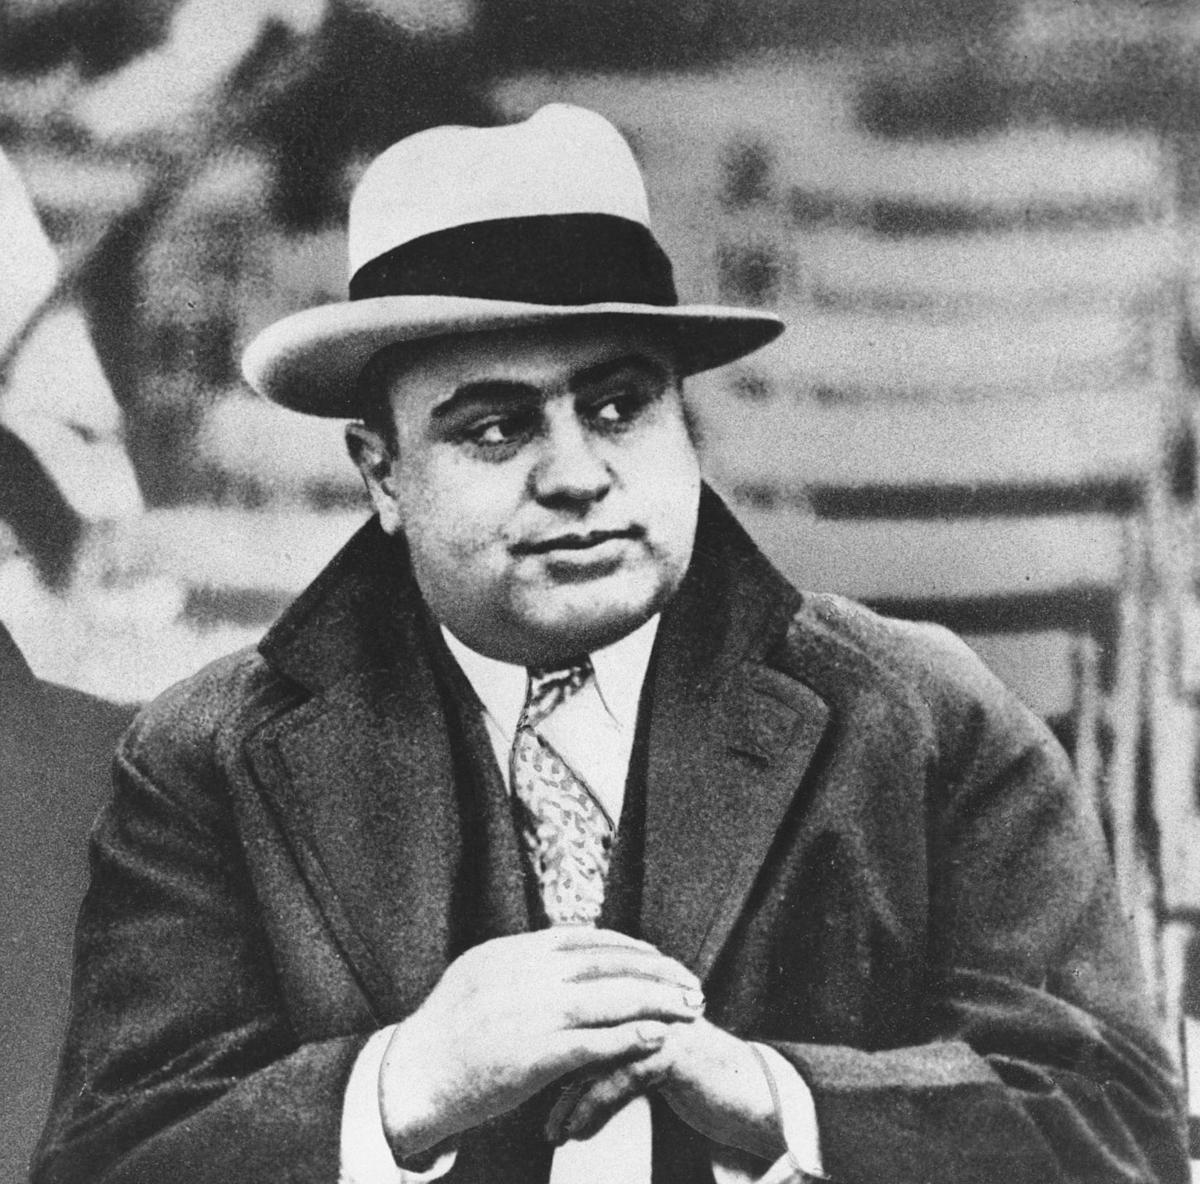 Chicago is known for Capone, but Illinois gangsters had much